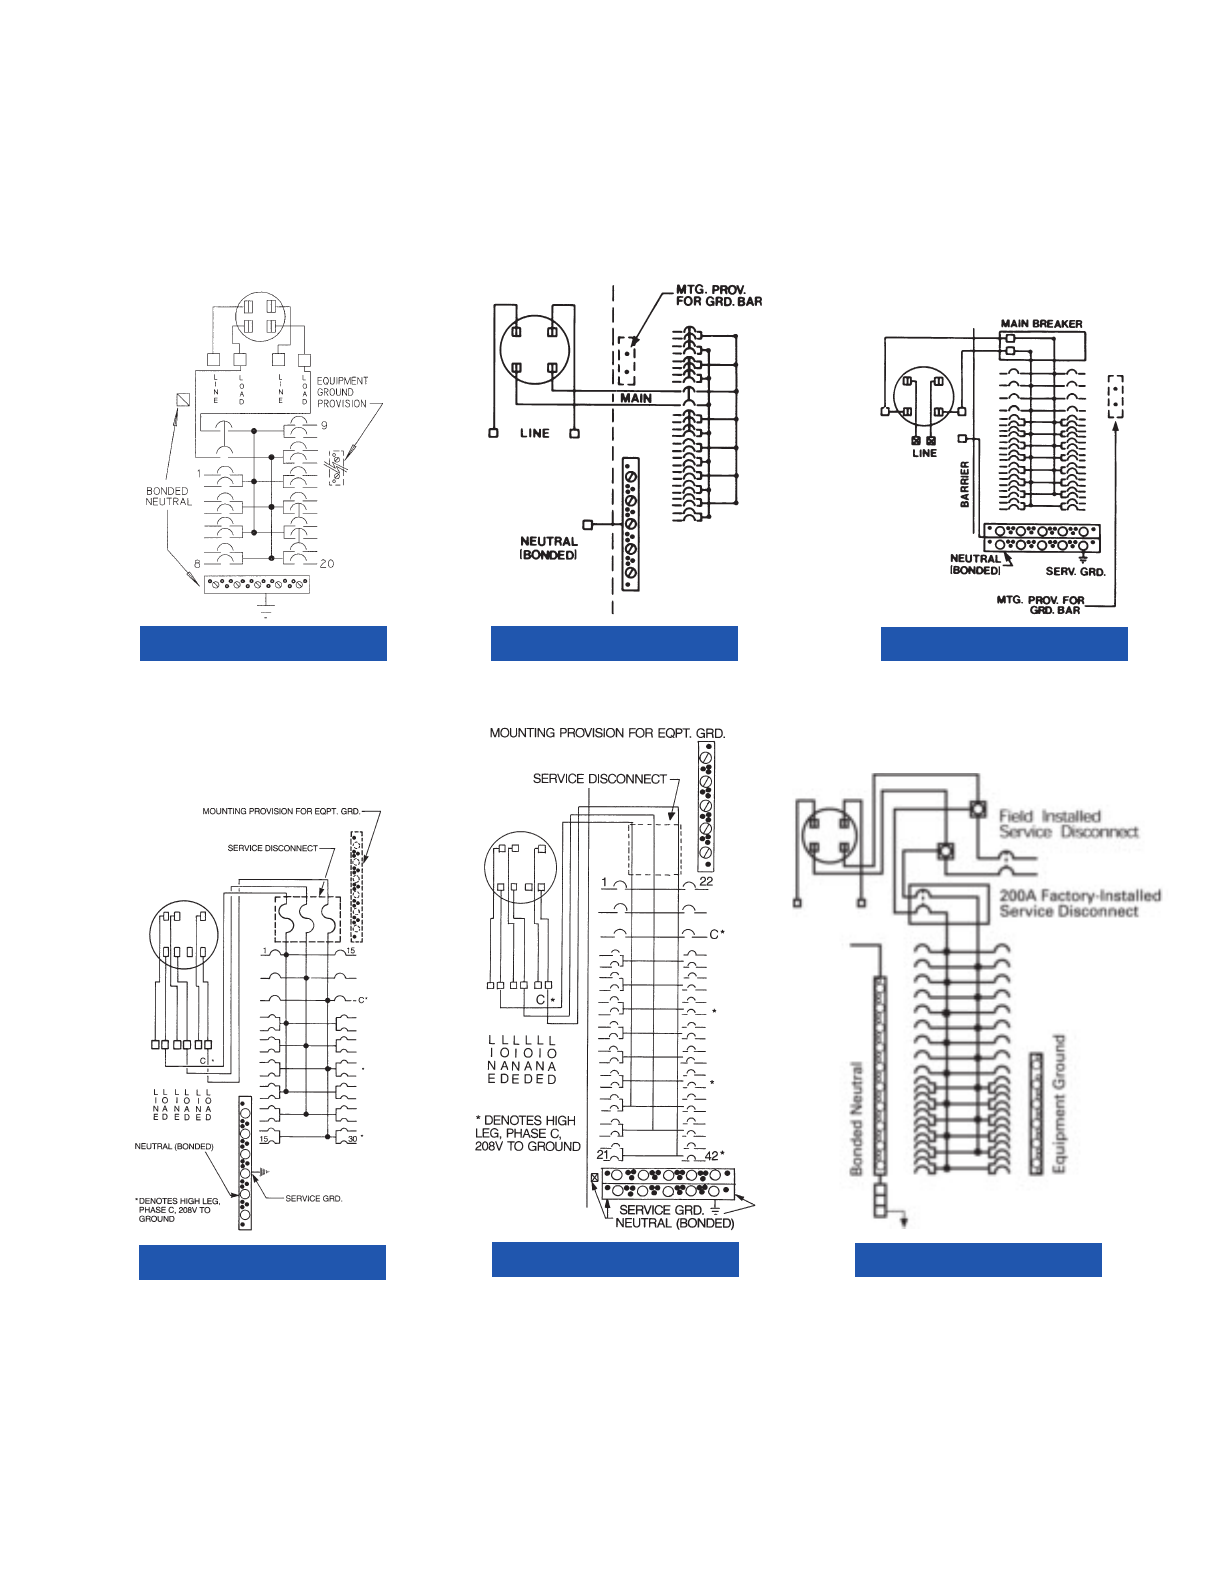 Lw004nr Wiring Diagram Murray Free Download Diagrams 200 Amp 4space 8circuit Euserc Br Type Main Breaker Meter Brochure 19 Commercial Metering Mc1020b1100ess Mc1224b1100cess Mc2440b1200cess At Tractor Ignition Switch